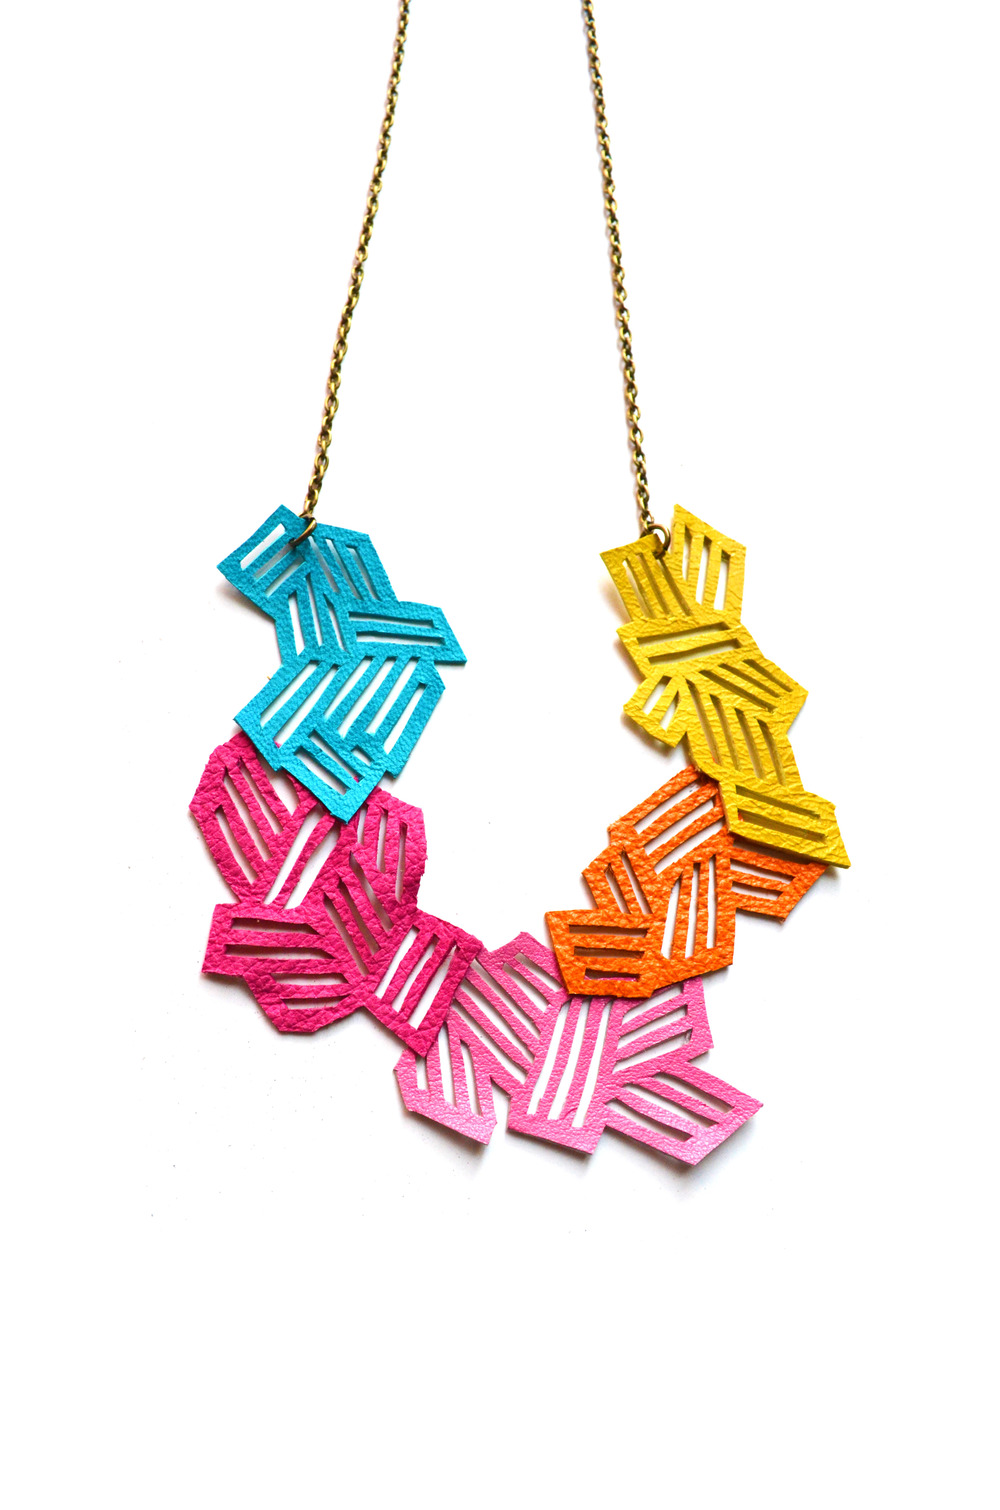 Geometric Necklace Rainbow Stripes and Lines 2.jpg